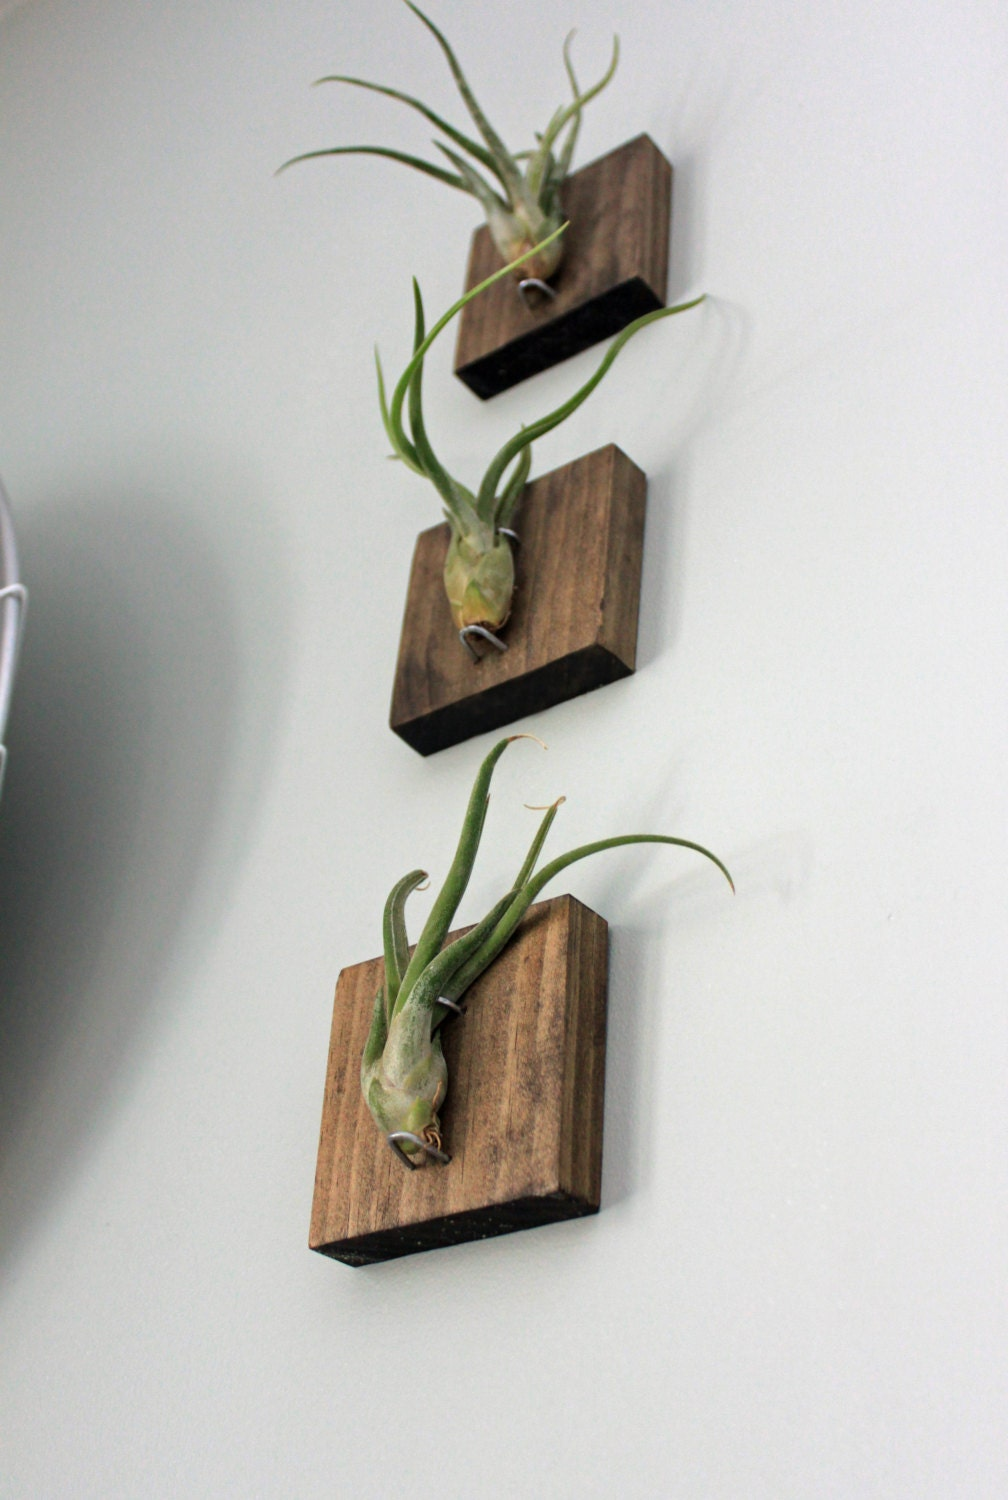 Mounted air plants medusa 39 s head living art by for Air plant art